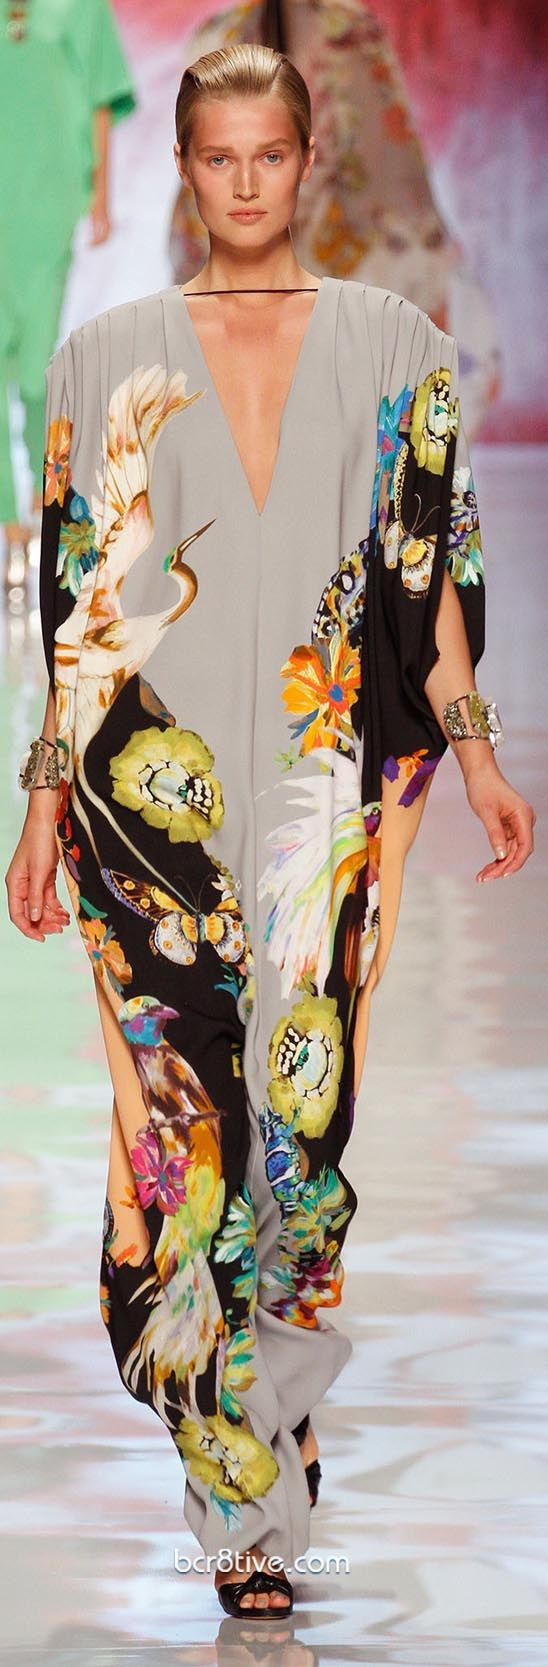 ETRO Spring Summer 2013 Ready To Wear Collection...now that's one hot moo-moo!